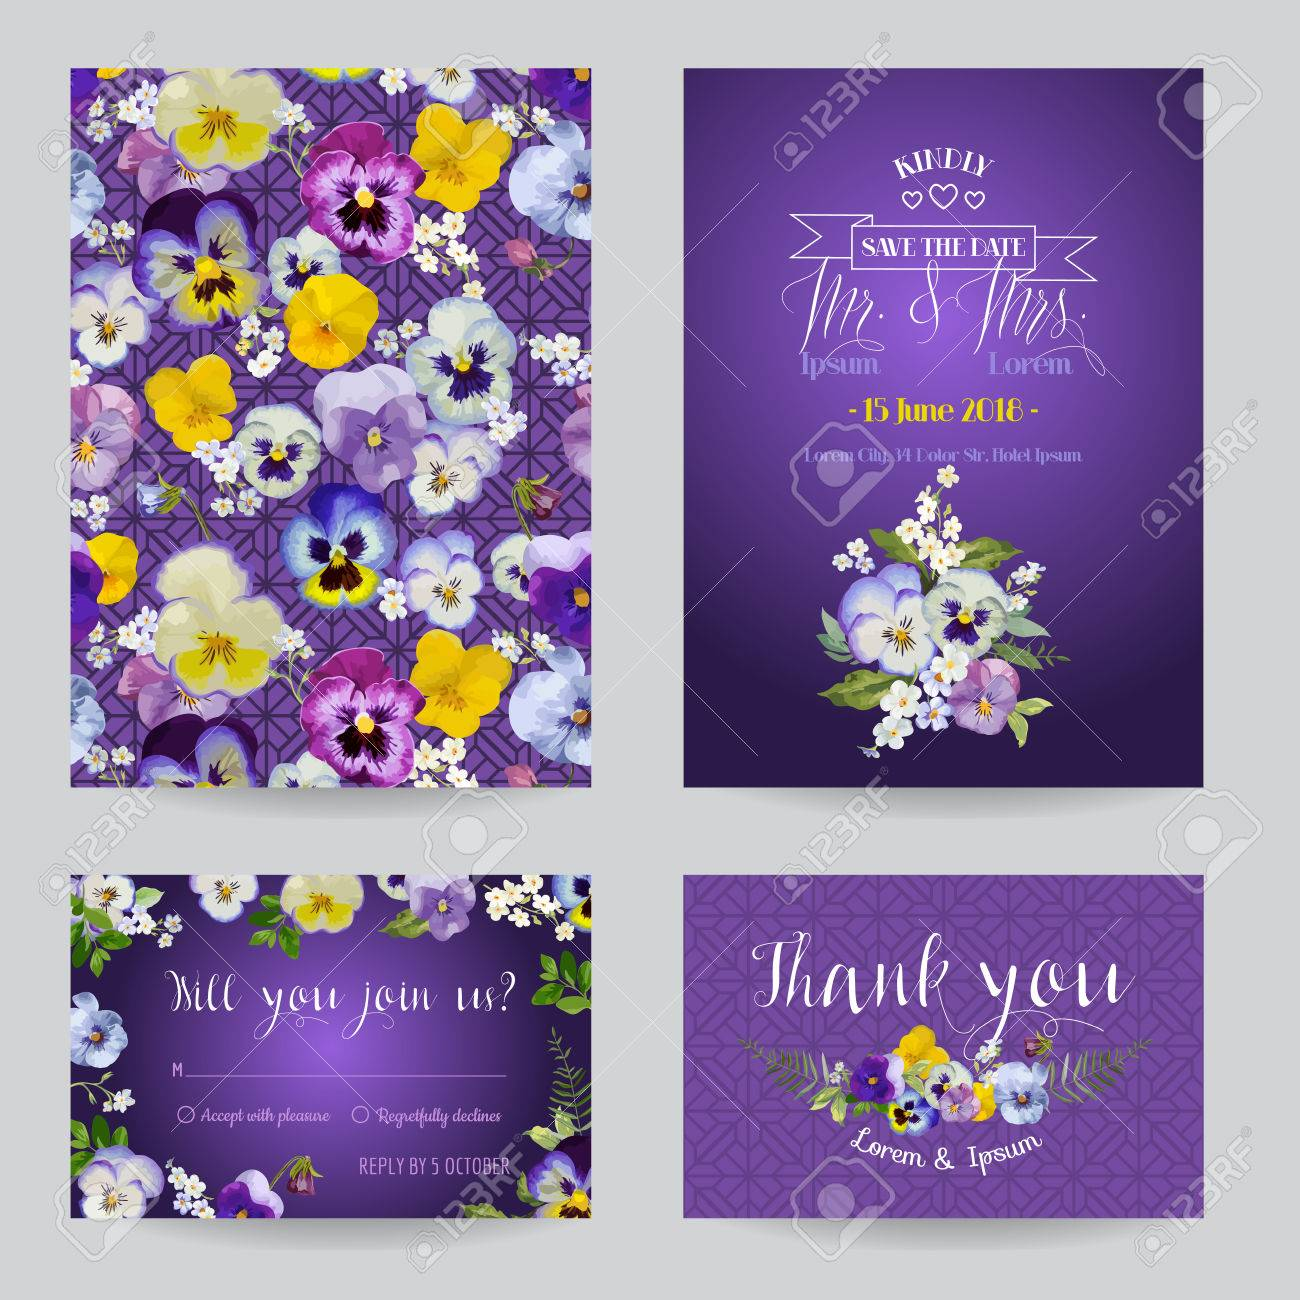 Save the Date - Wedding Invitation or Congratulation Card Set - Flower Pansy Theme - in vector - 51722795